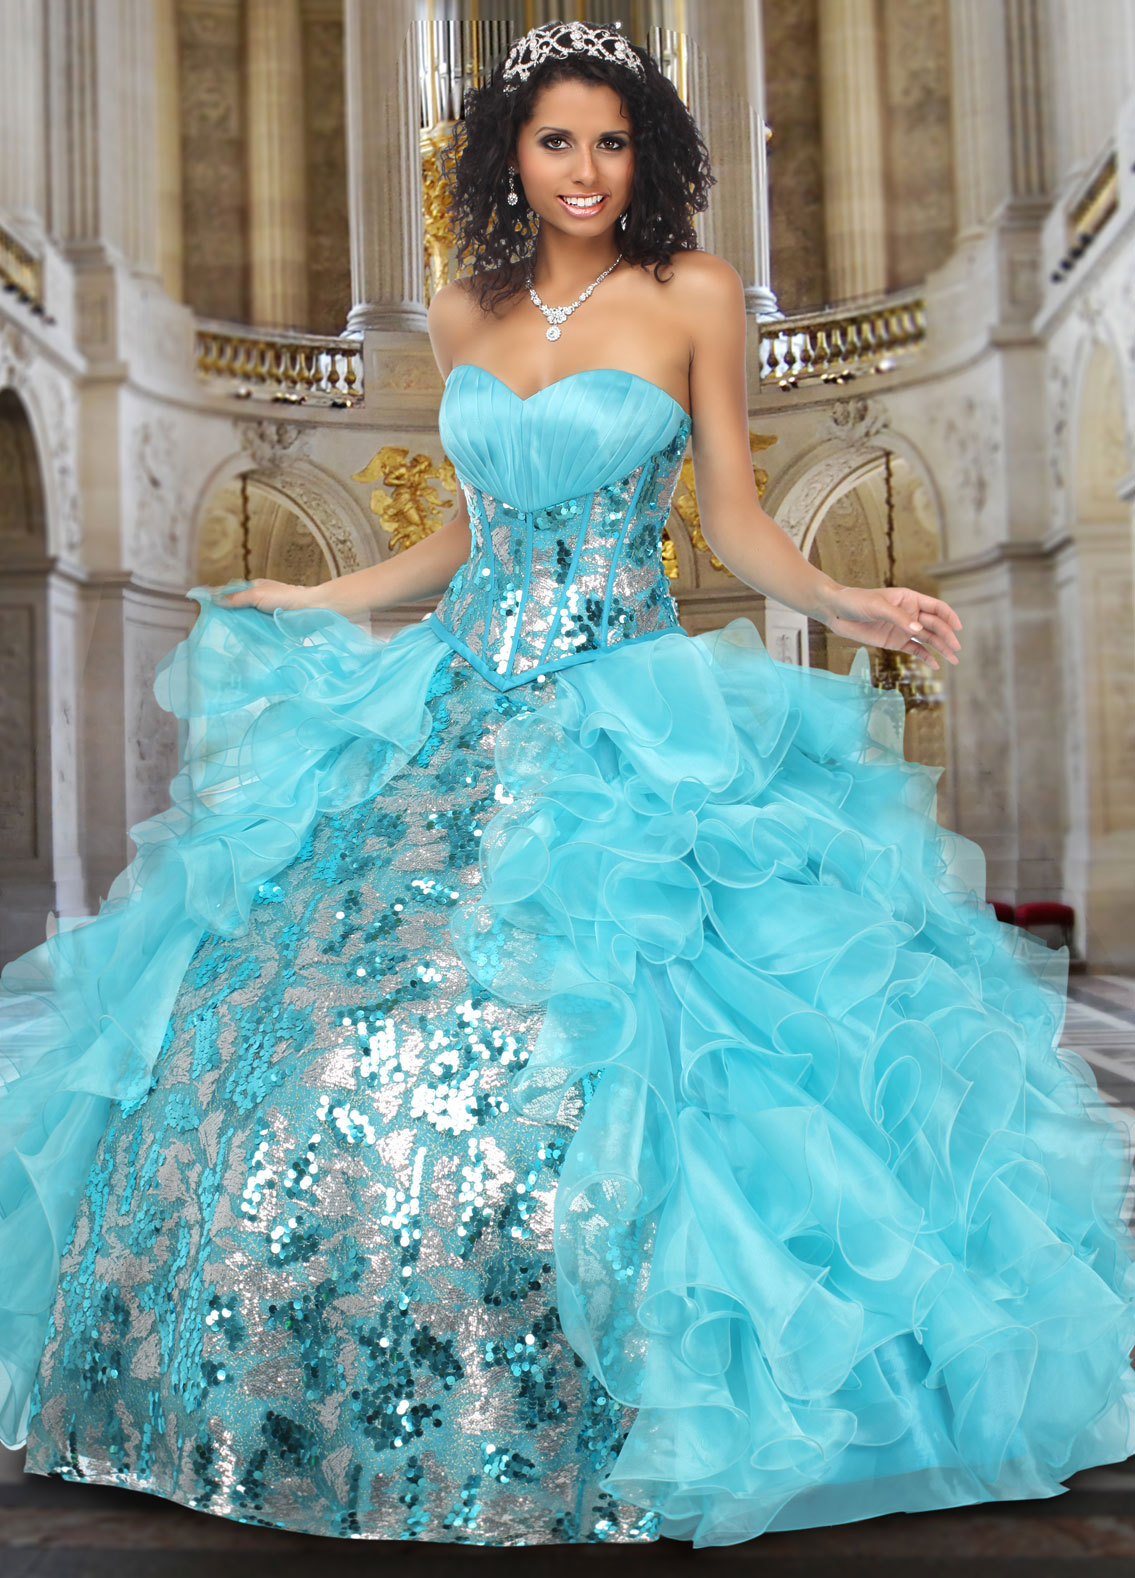 Sweet Dreams Bridal and Quinceanera Boutique | Dress Shops Austin ...